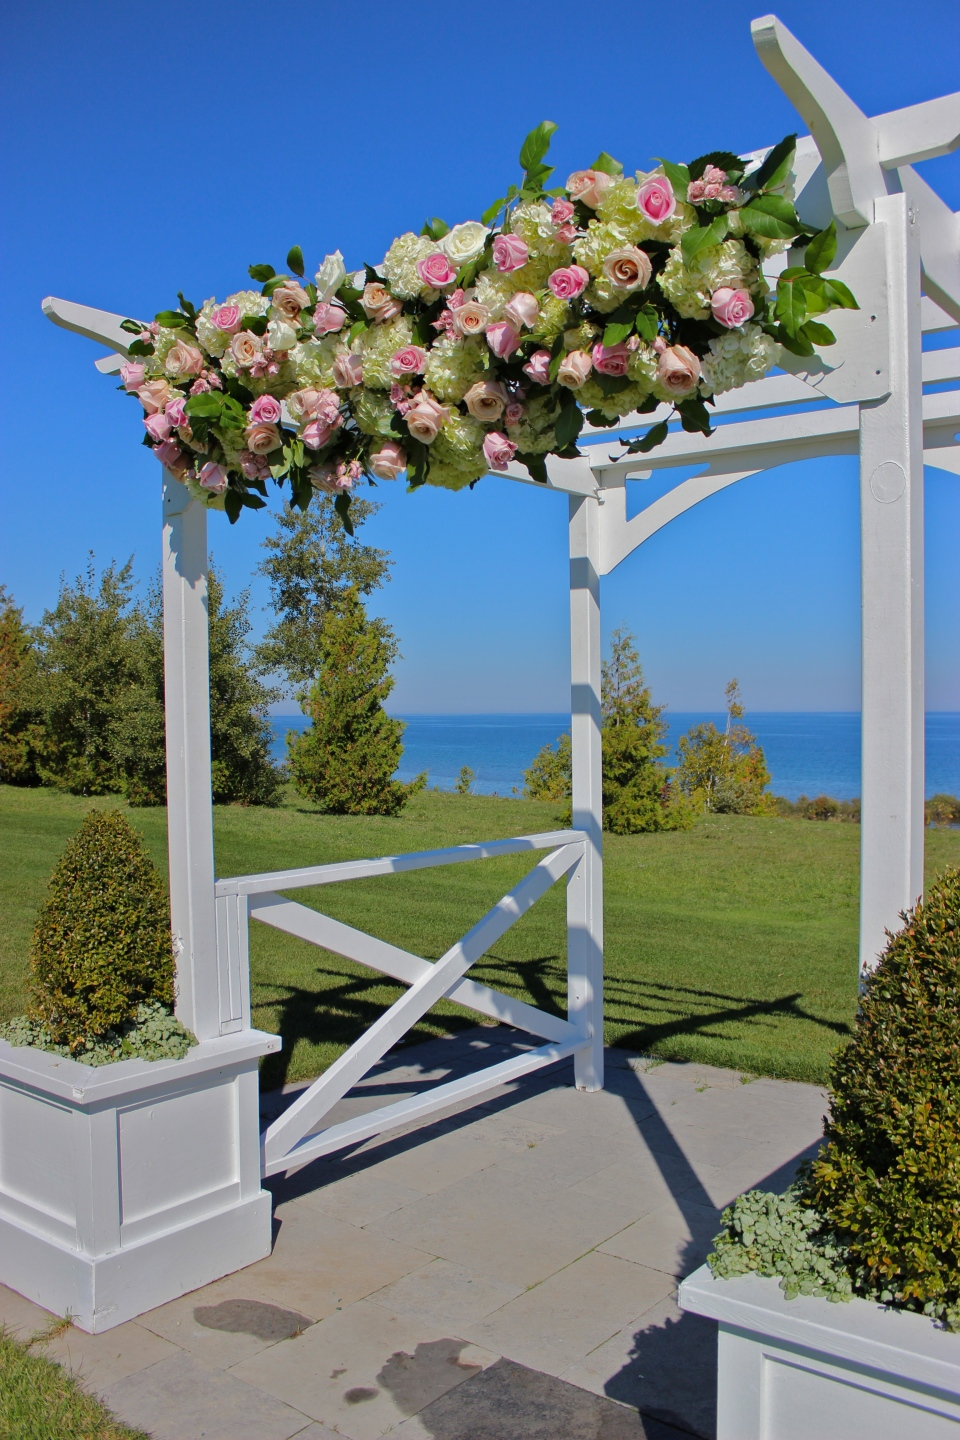 Floral Trellis Arrangement of Hydrangea, Roses and Greens